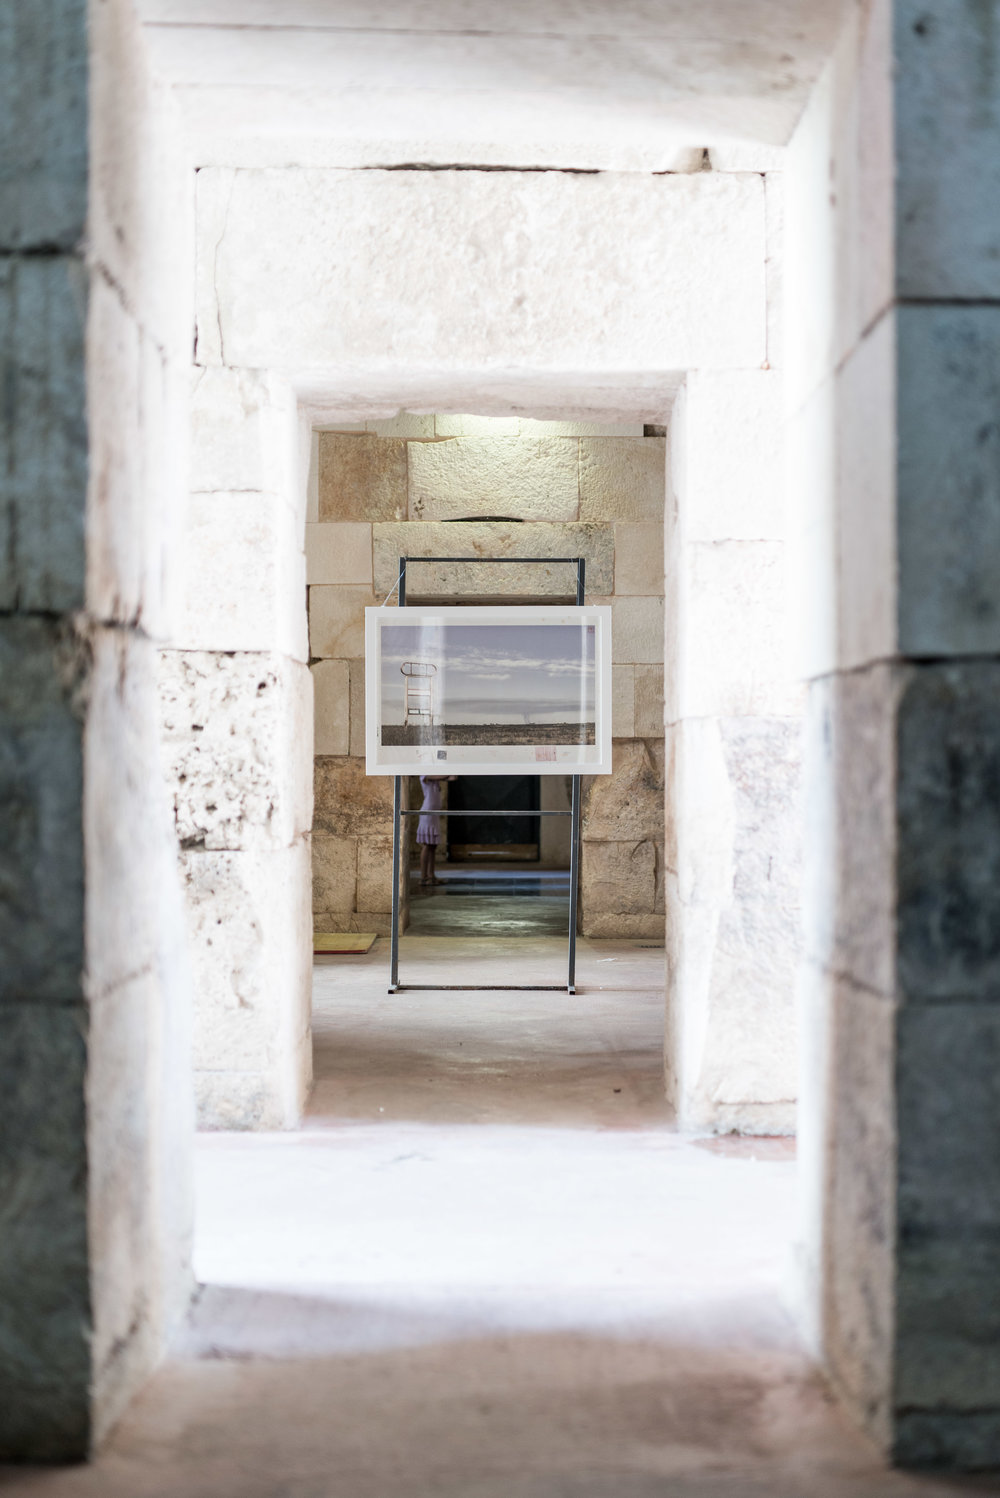 Installation in the Diocletian palace rooms